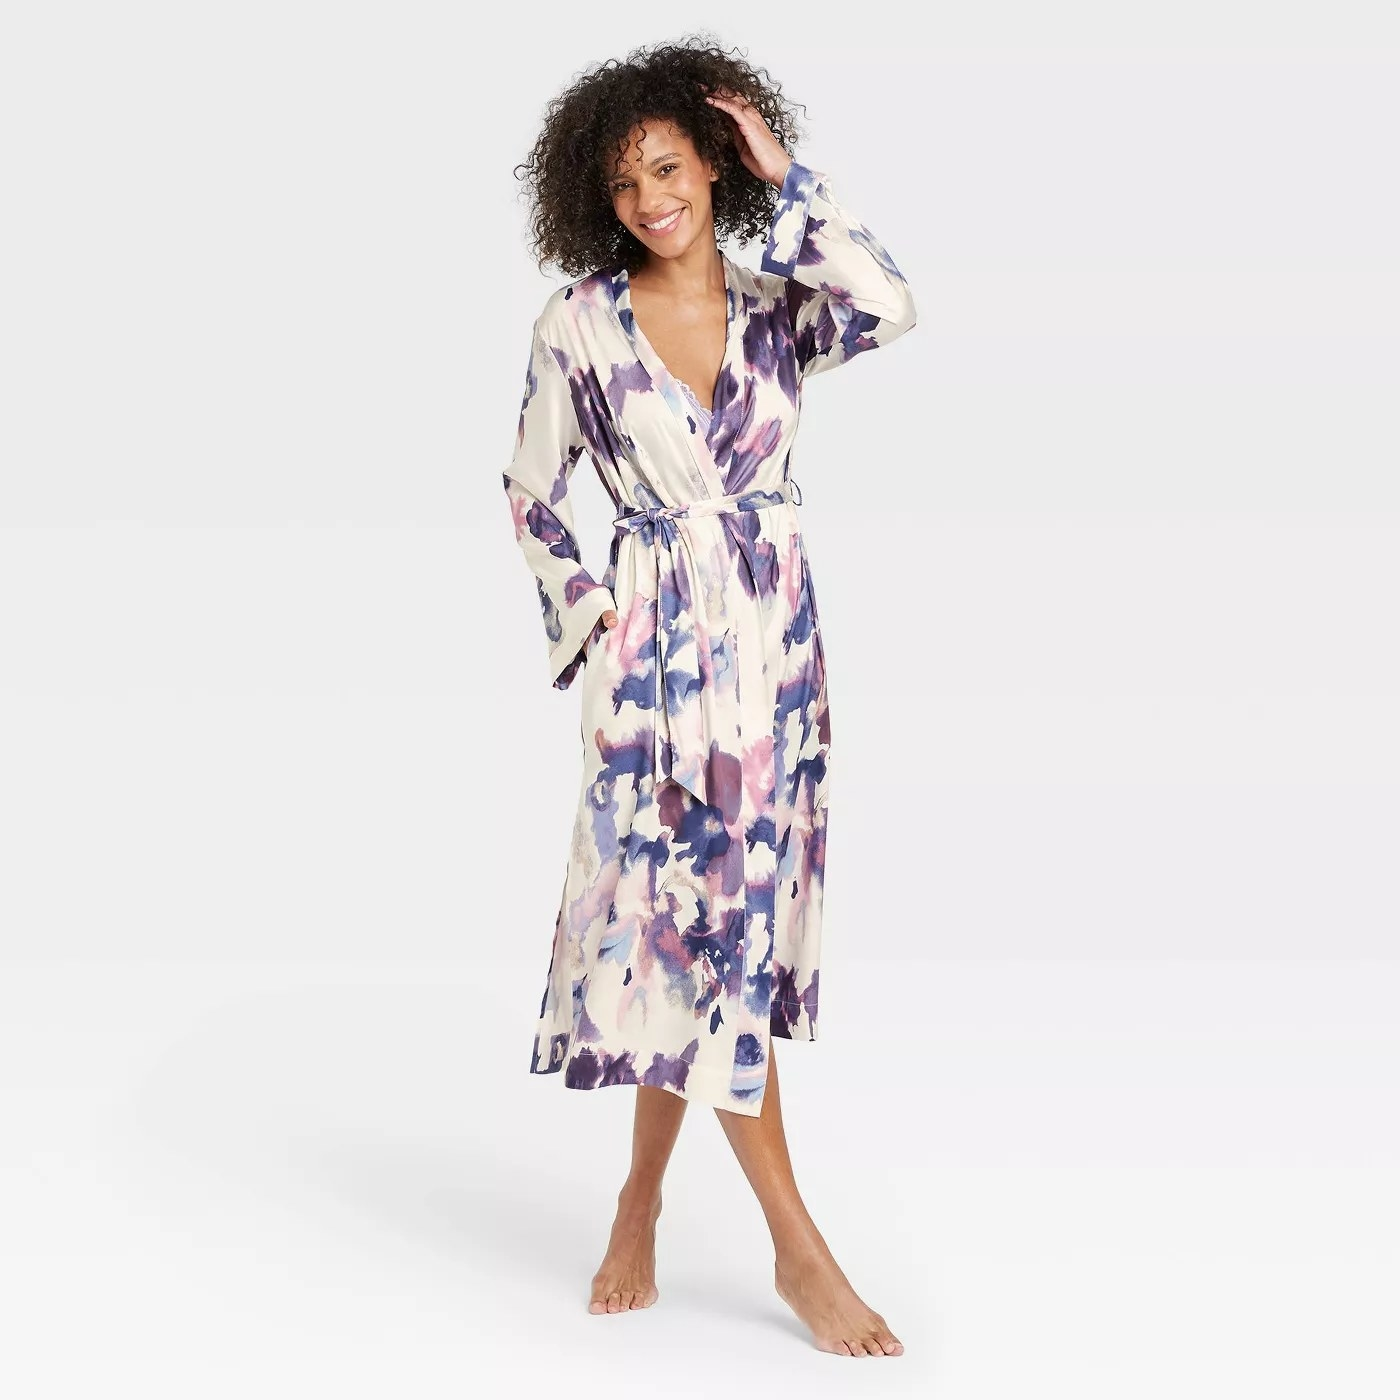 A model wearing the cream-colored robe with a purple floral print and matching waist tie